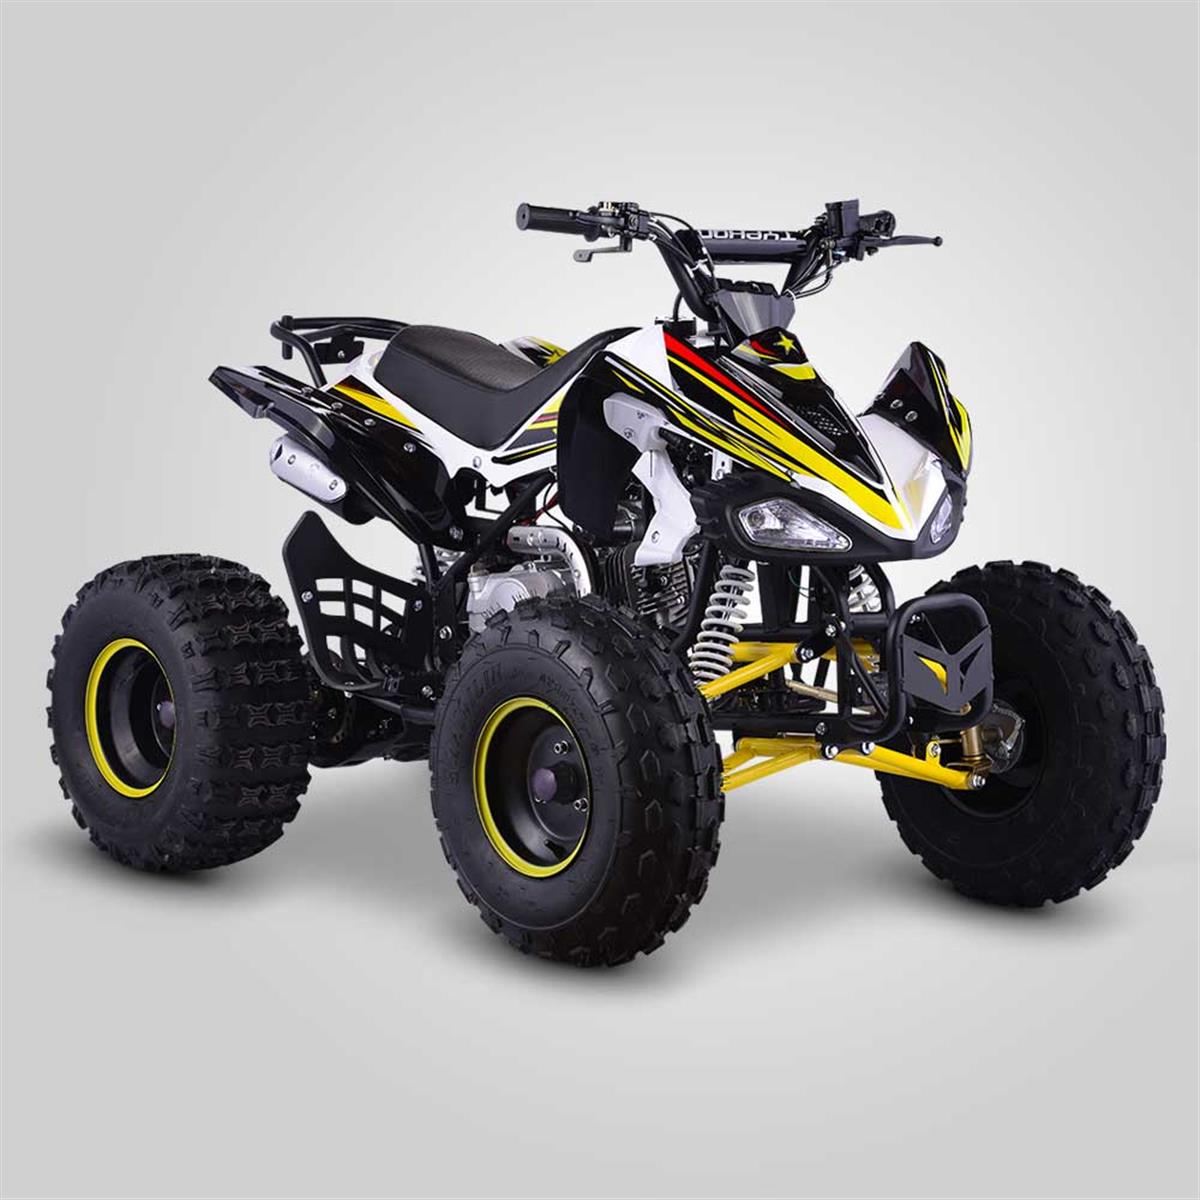 video de quad les quads triton arrivent en force objectif moto quad enfants loisirs 110cc. Black Bedroom Furniture Sets. Home Design Ideas